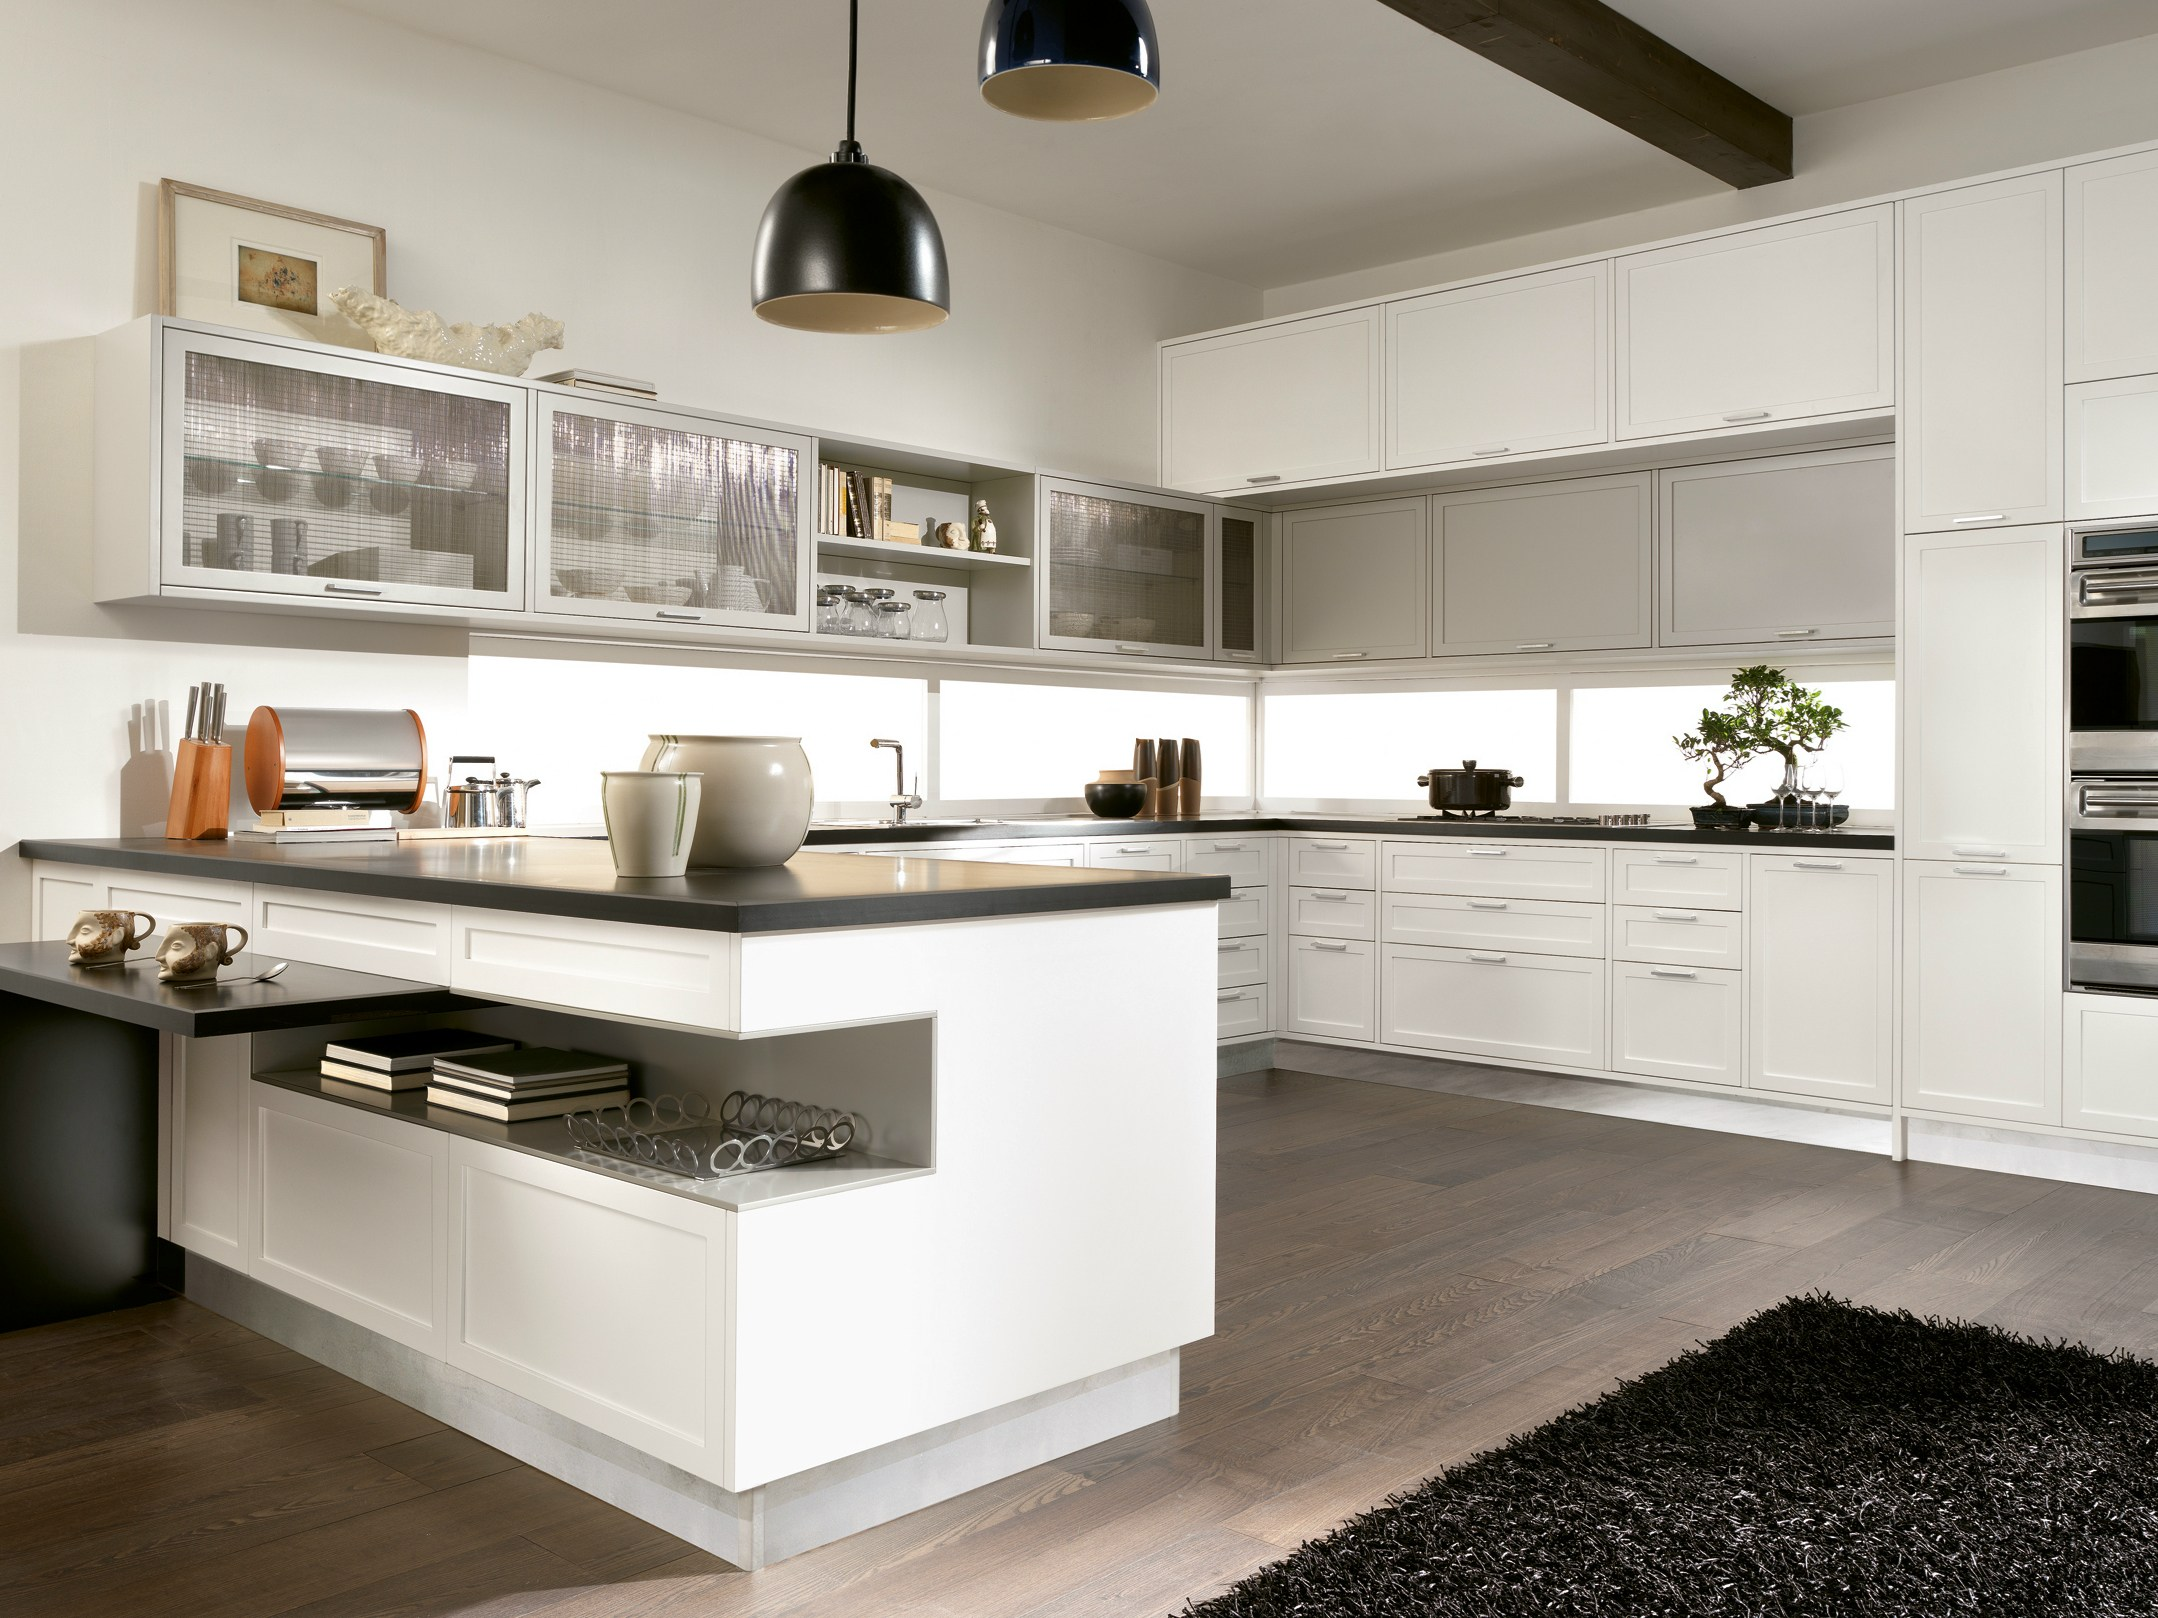 Timeline cucina con penisola by aster cucine